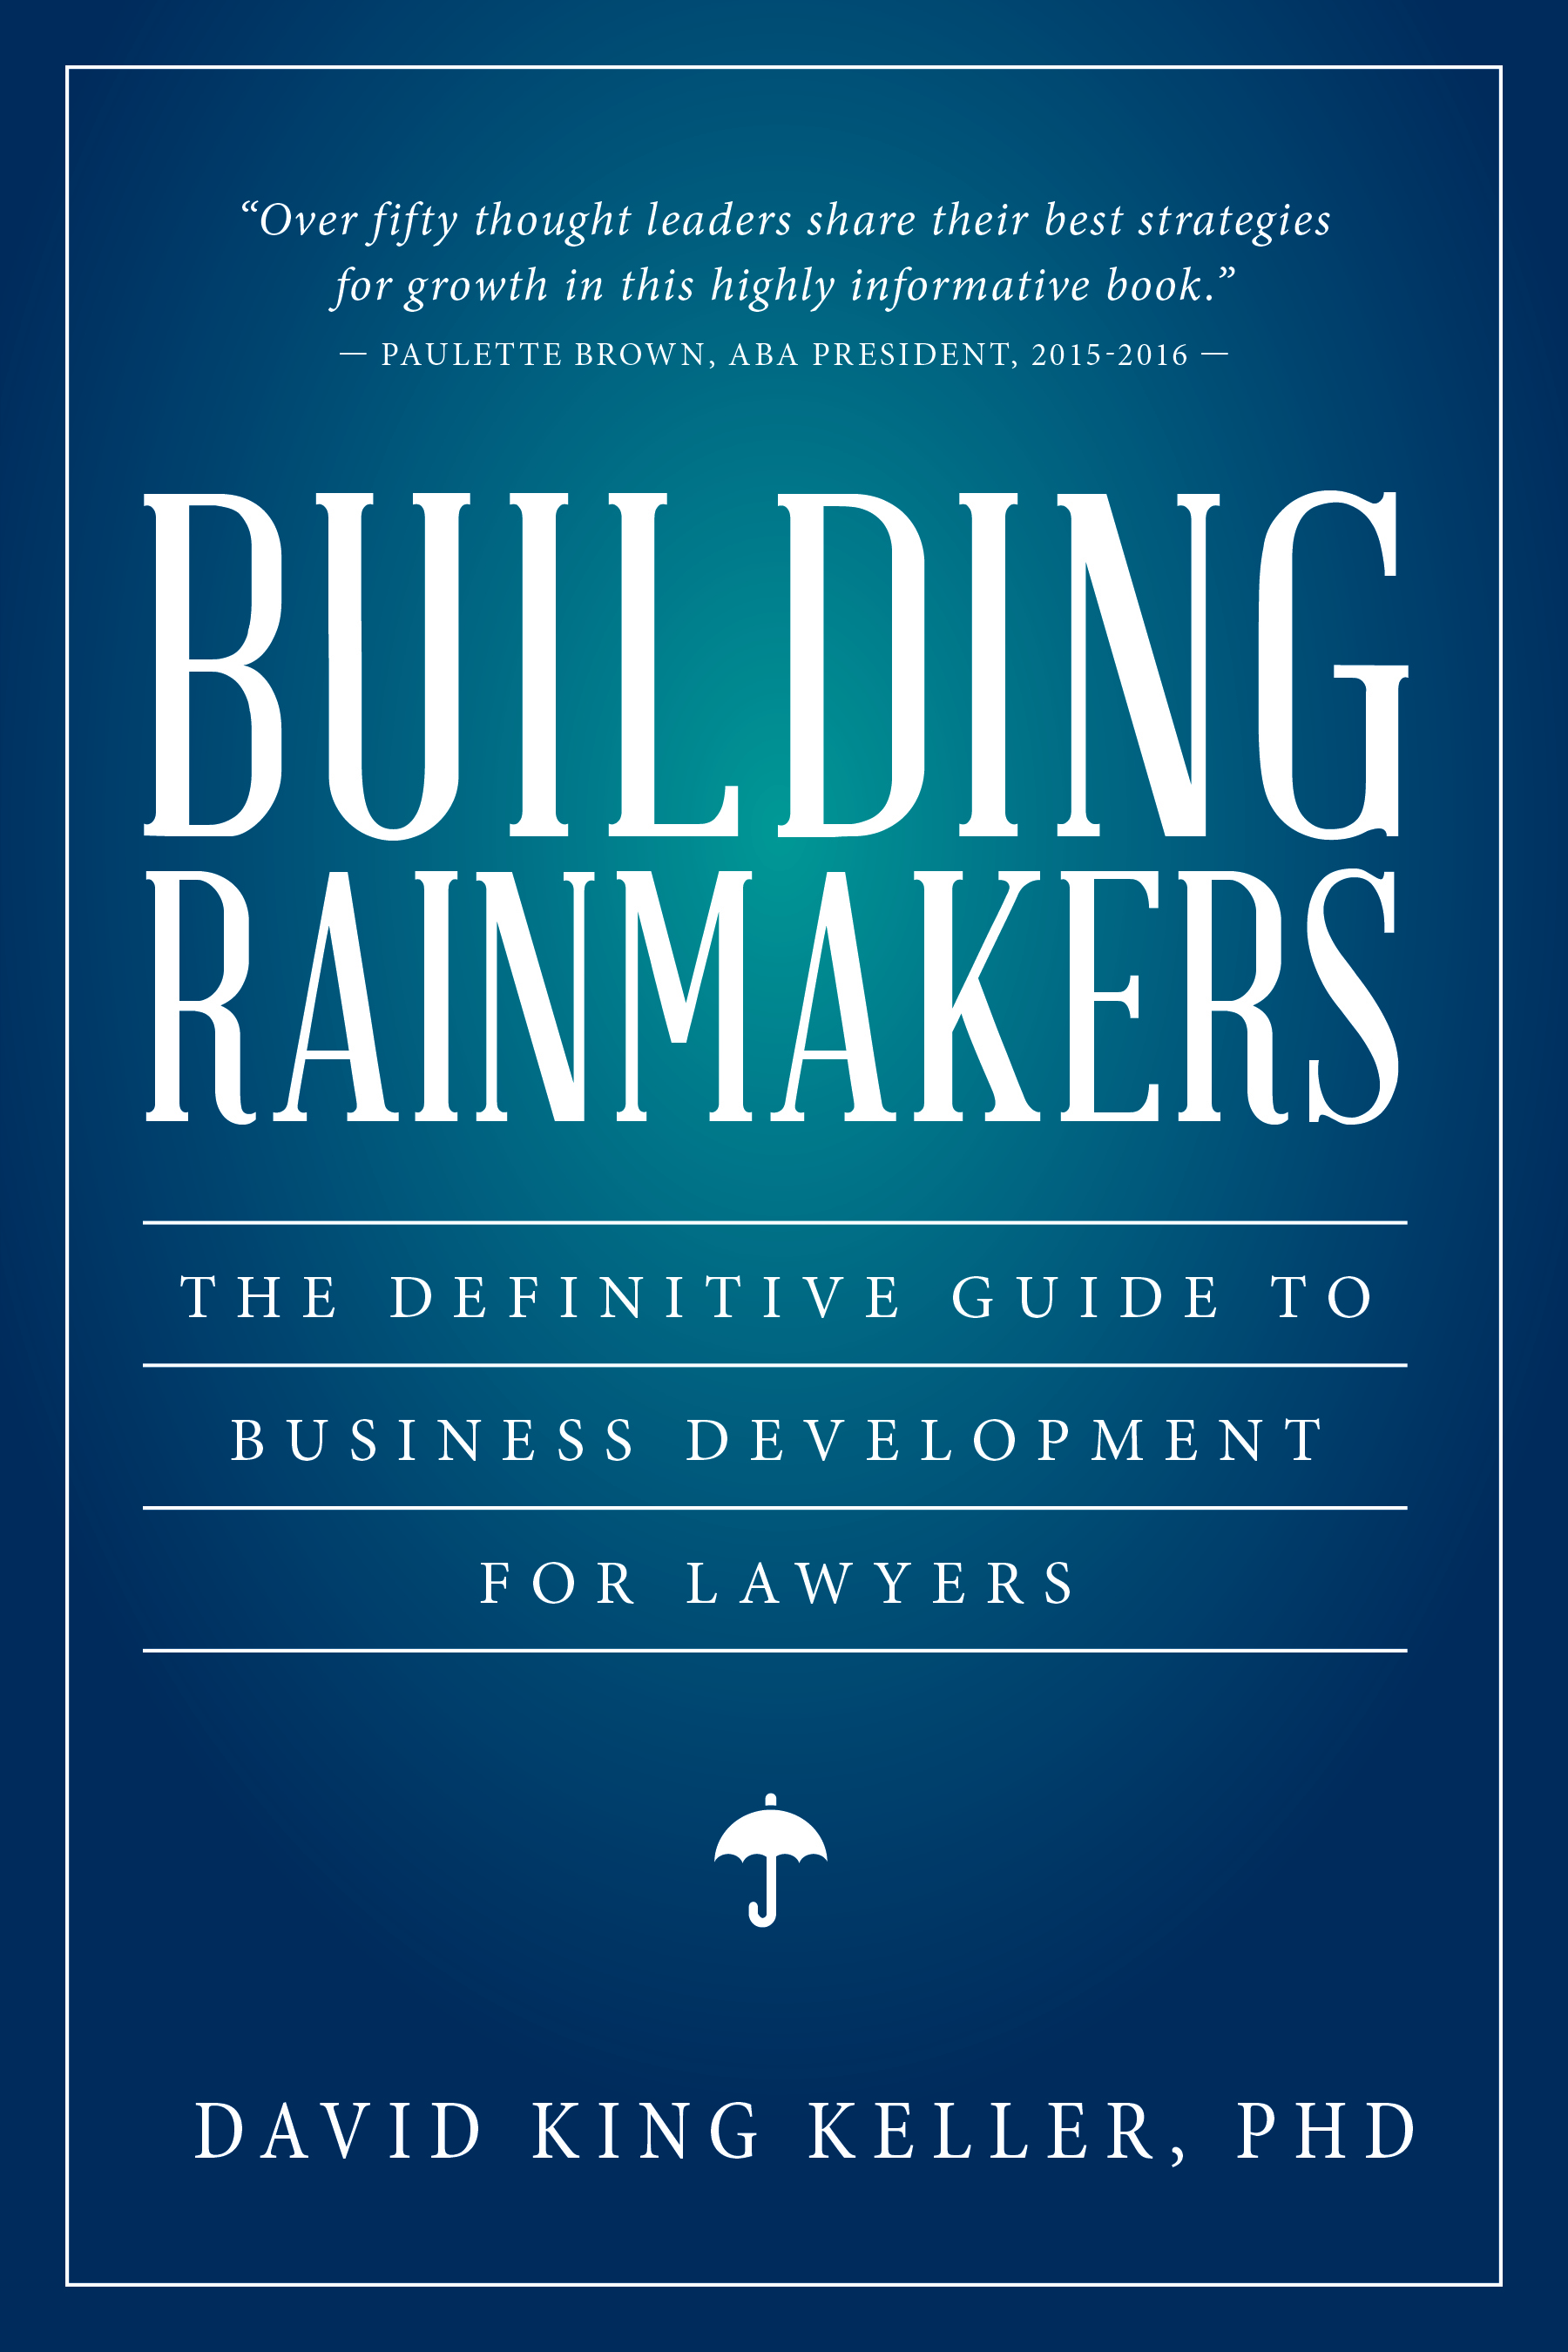 Building Rainmakers: The Definitive Guide to Business Development